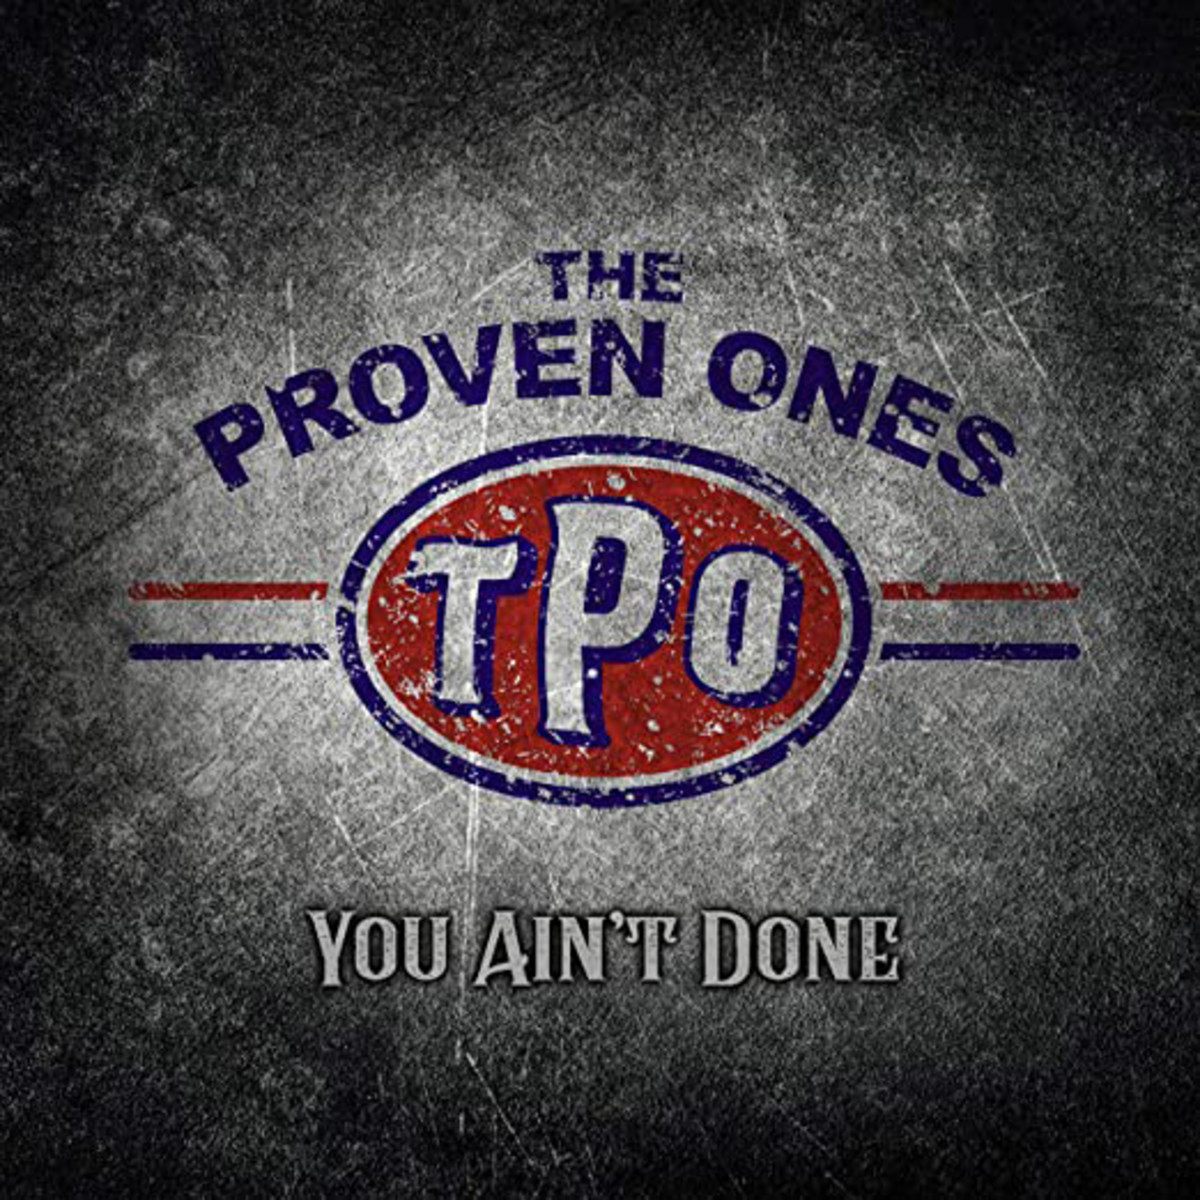 The Proven Ones